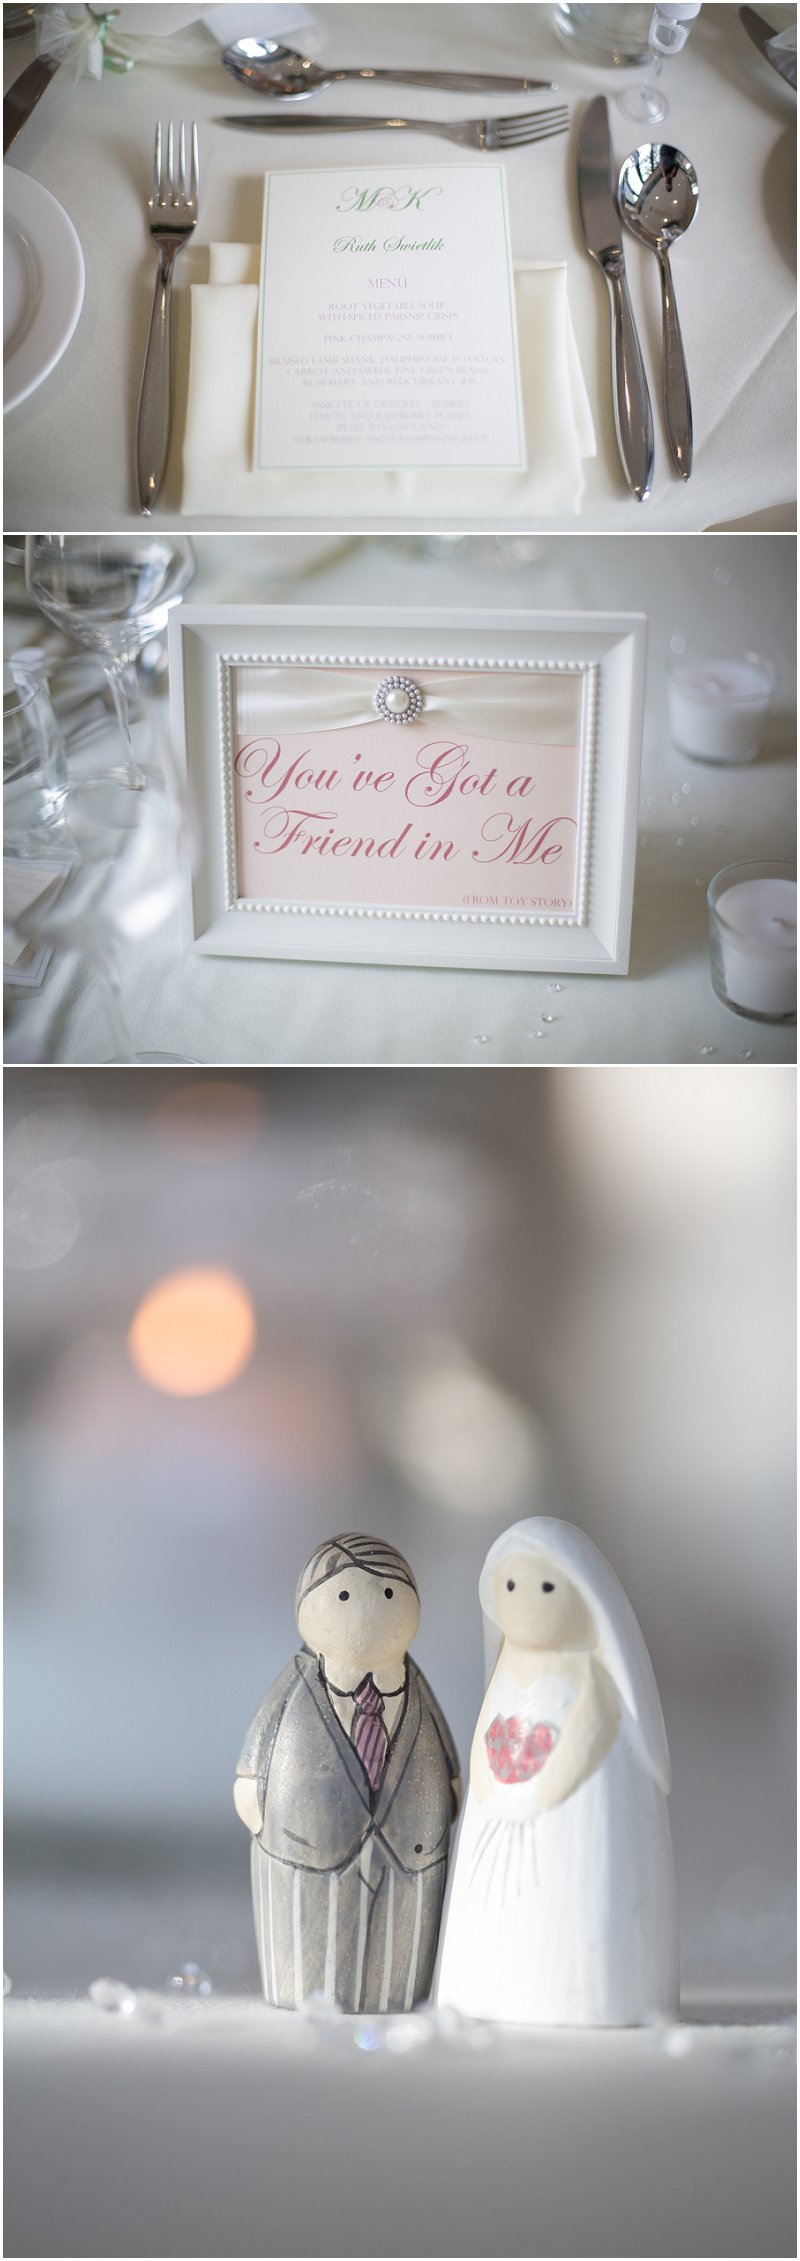 Room details during wedding at West Tower Photography